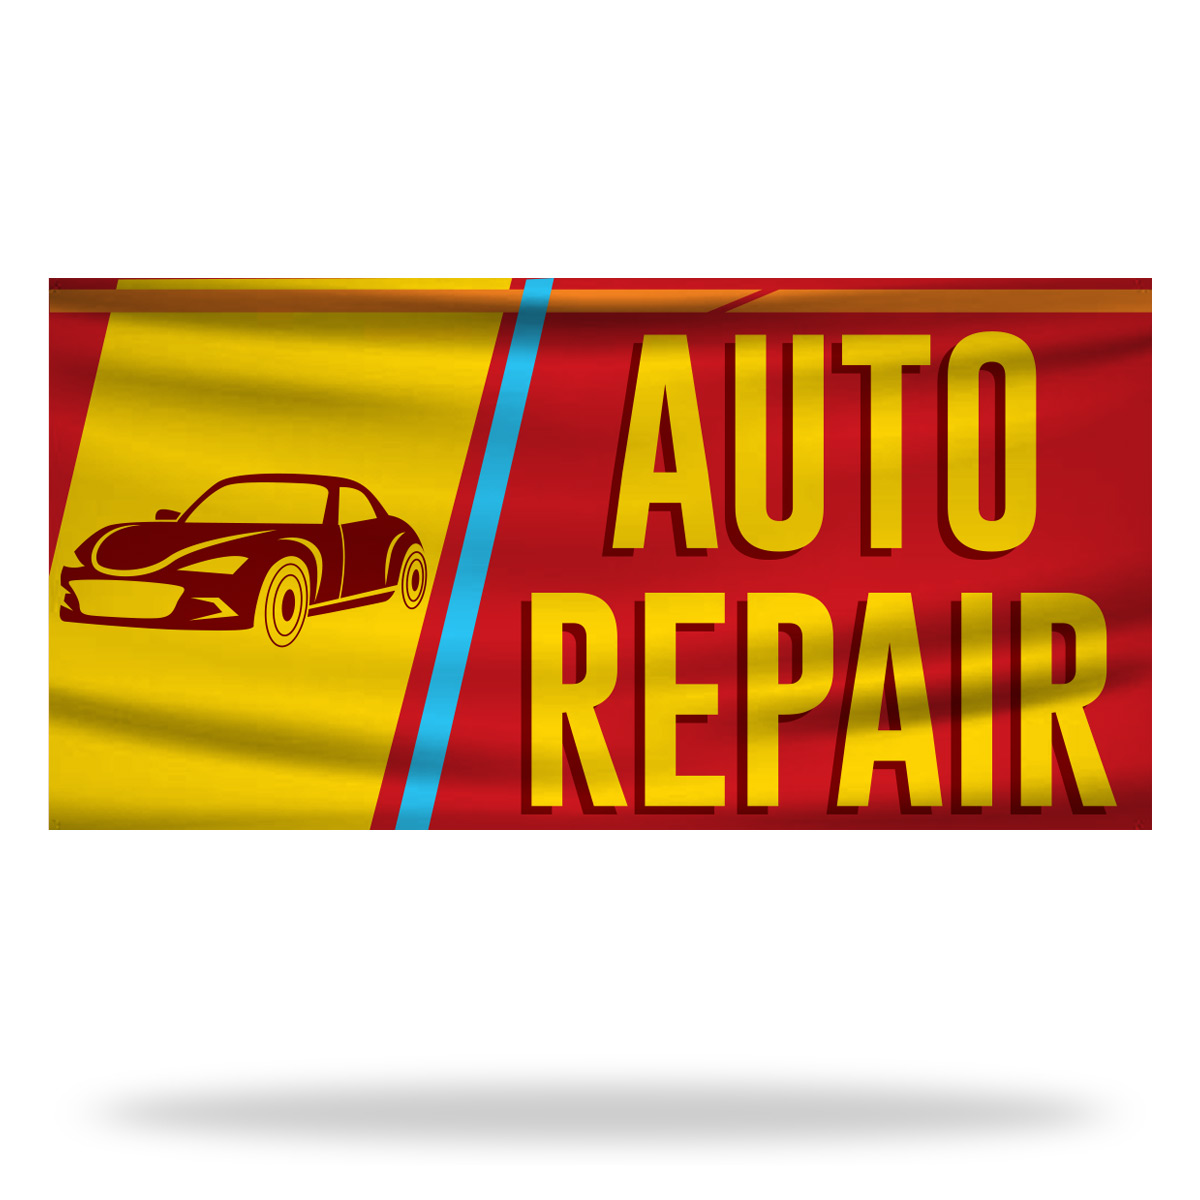 Auto Repair Flags & Banners Design 01